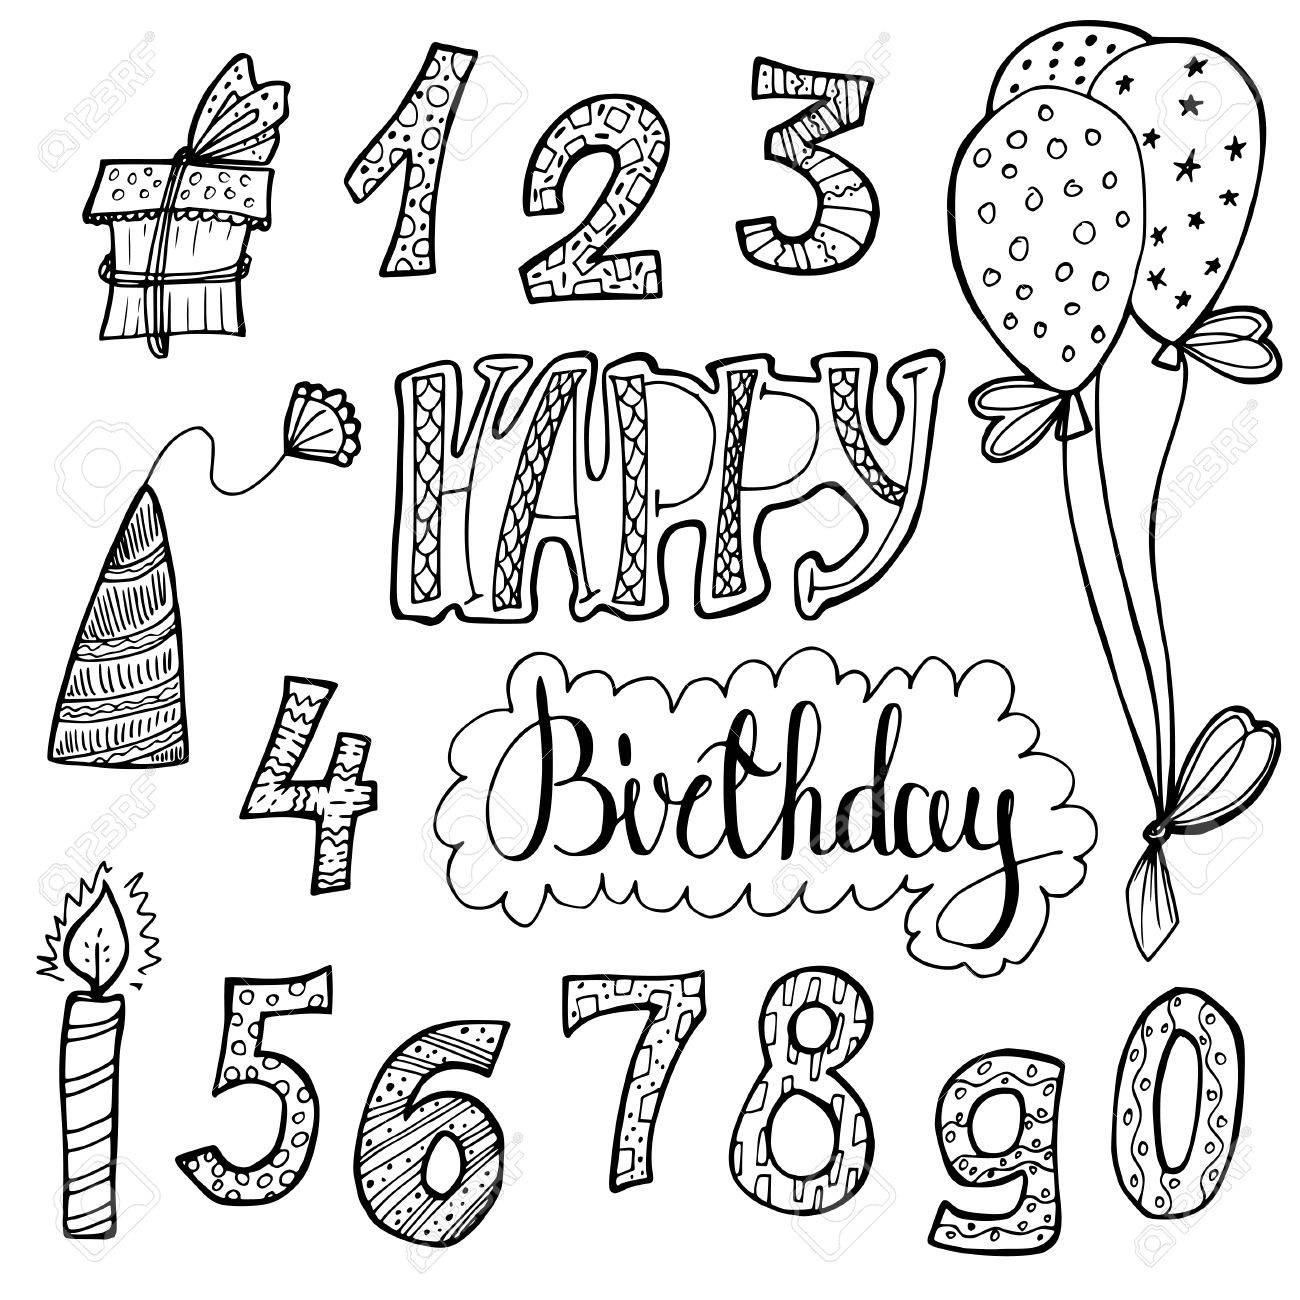 1300x1300 Happy Birthday. Doodle Set Of Birthday Decorations For Gift Card